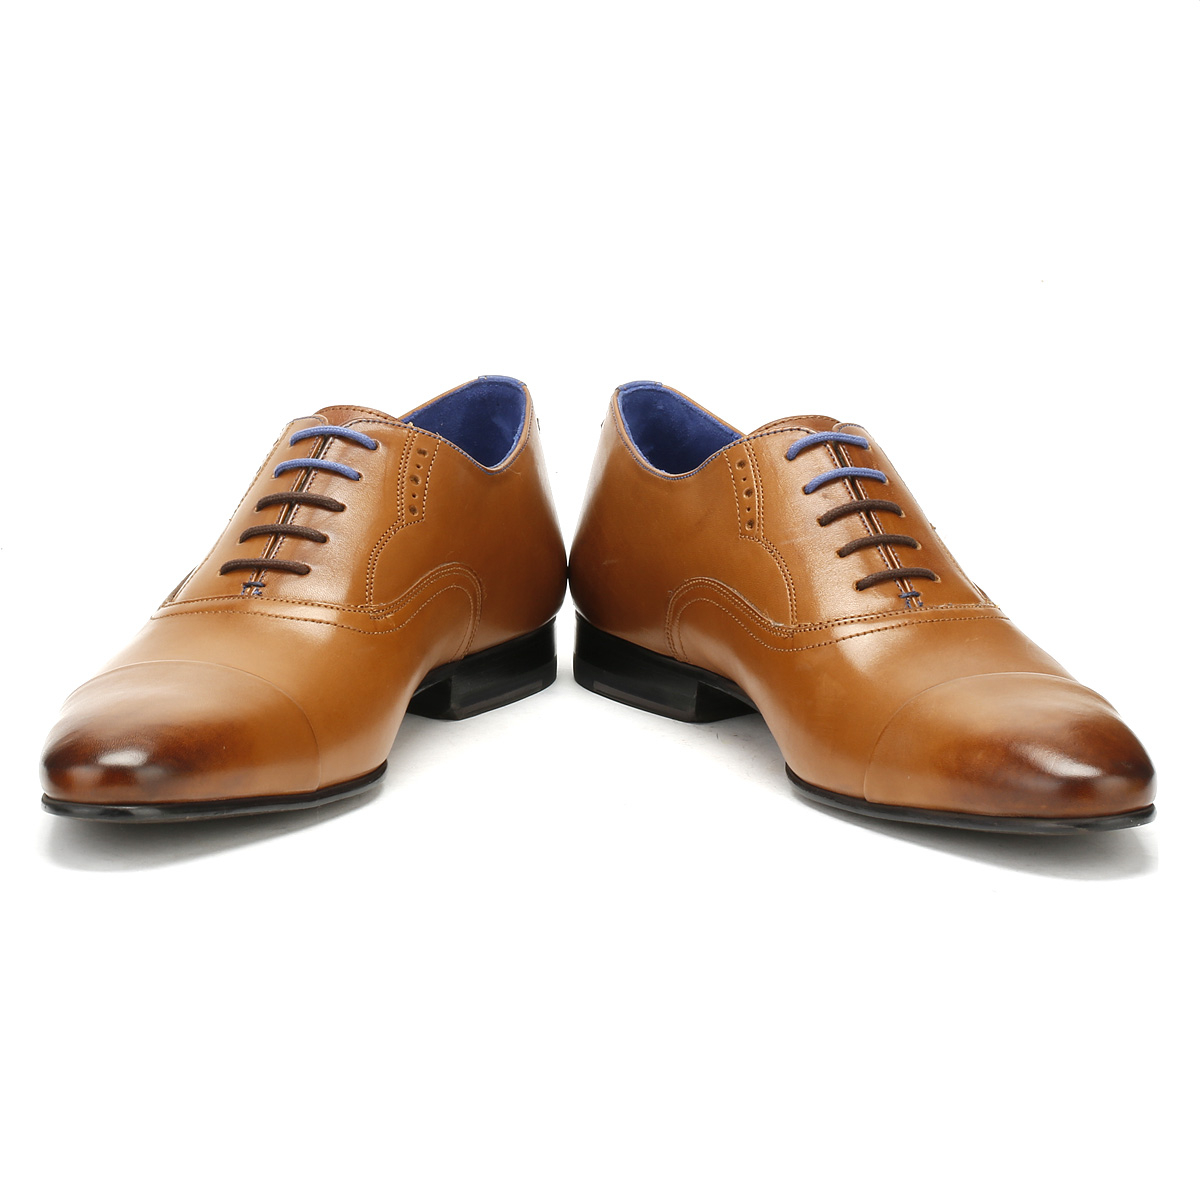 d19b4197a1ba66 Ted Baker Mens Murain Formal Shoes Tan Brown Leather Lace Up Smarts ...